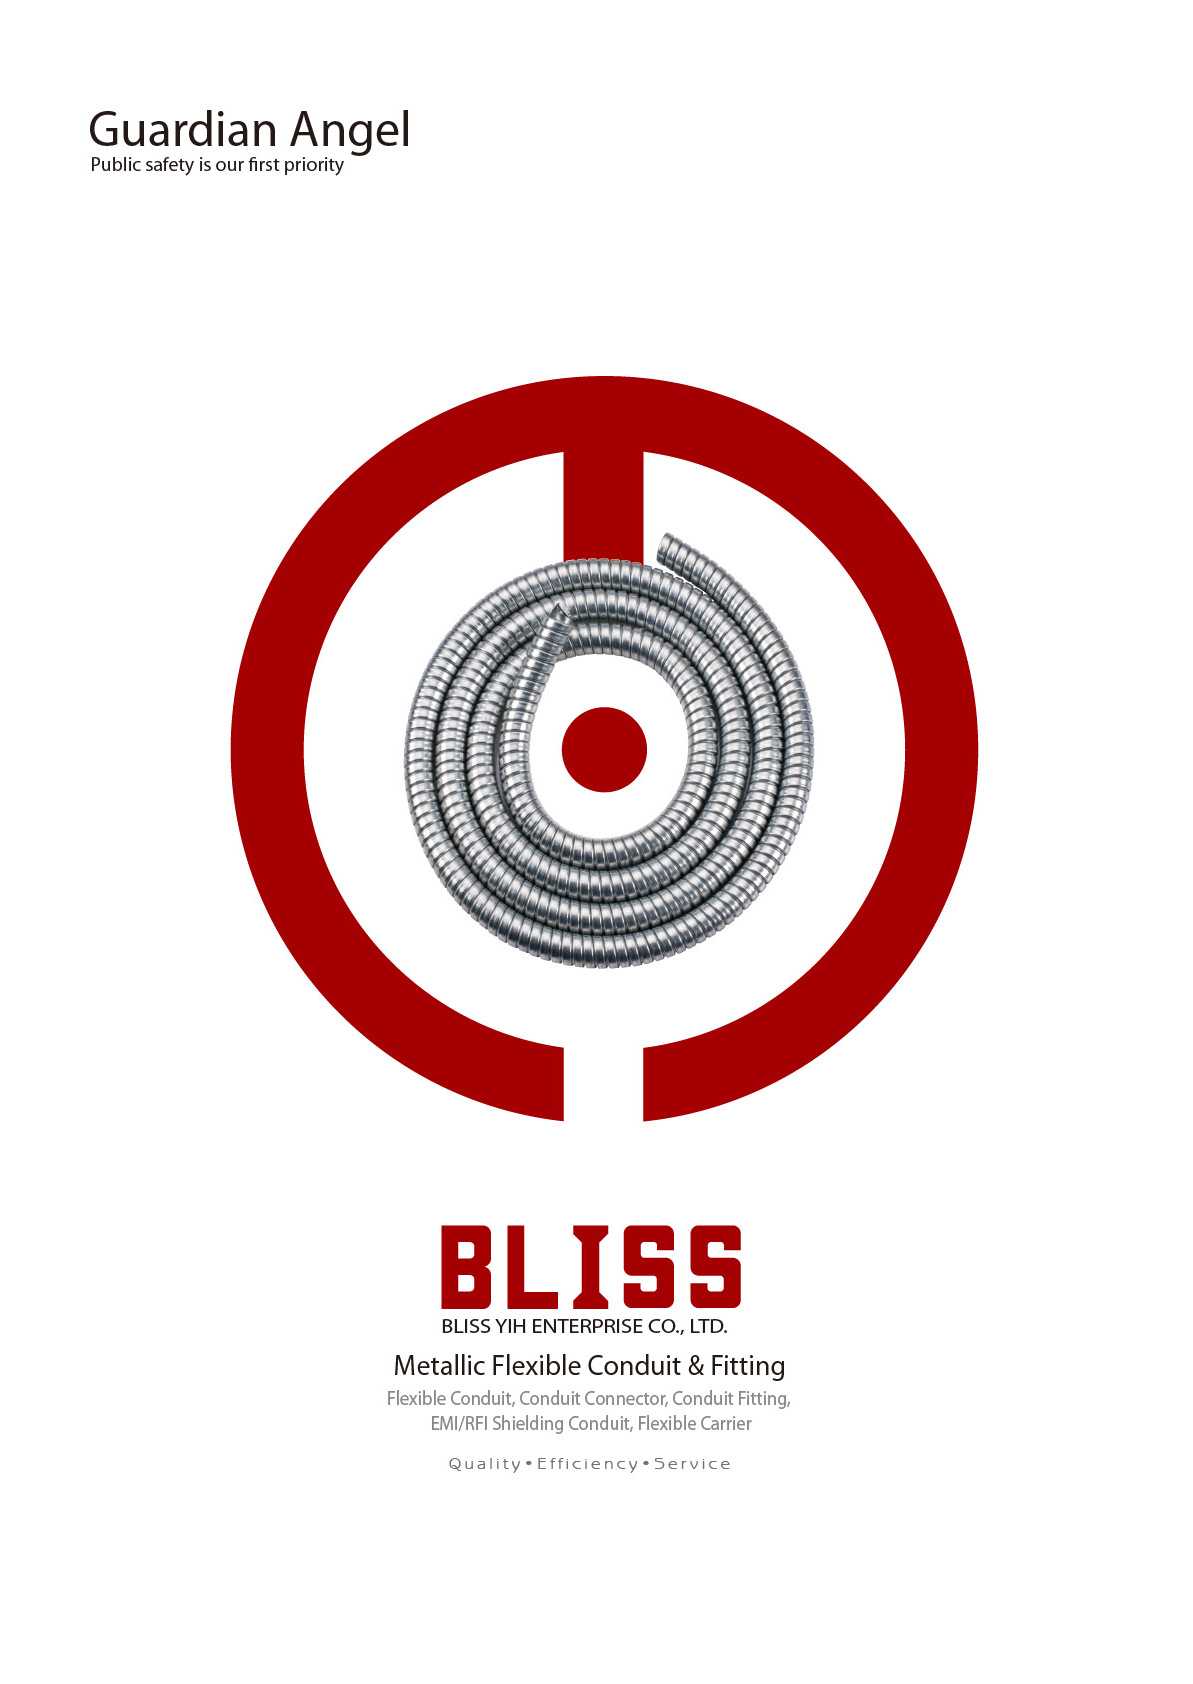 bliss catalog download